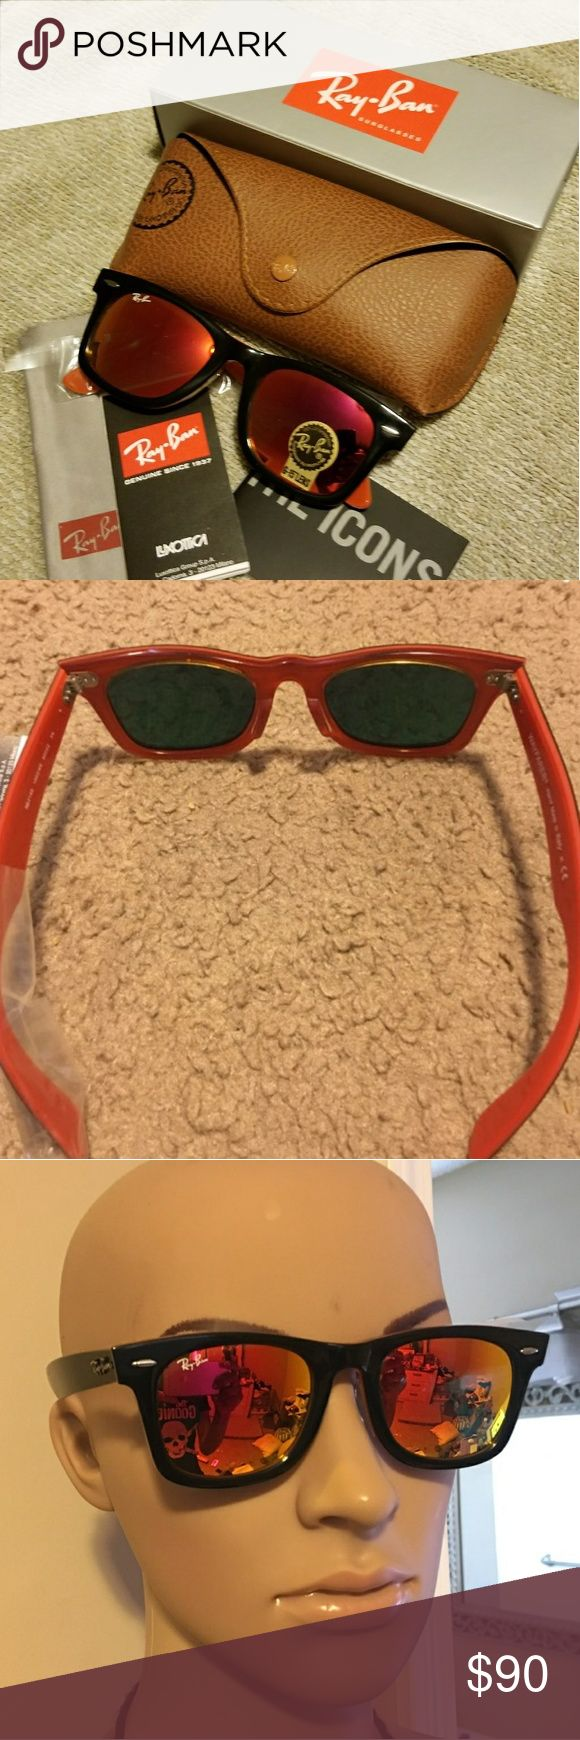 Ray Ban Wayfarer Sunglasses Red RB2140 50MM NEW Ray Ban Wayfarer Sunglasses RB2140 RED AND BLACK 50mm Lens   Comes with all you see in pictures  BRAND NEW!!!  SIZE: 50MM   MAKE ME AN OFFER!   PLEASE NO LOW BALLERS!! Ray-Ban Accessories Sunglasses